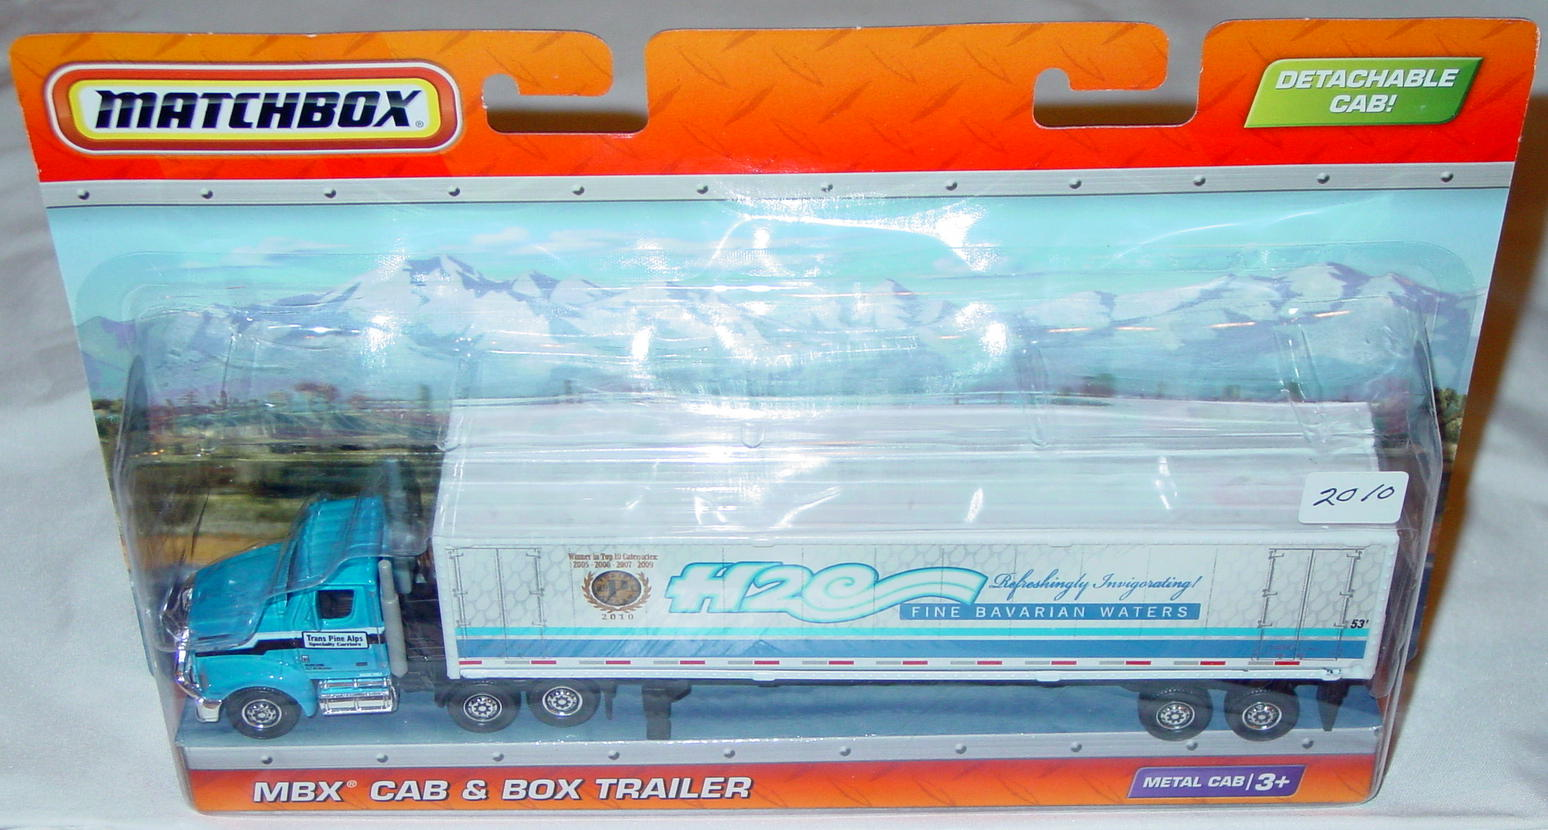 Convoy - SUPERCONVOY 2010 Box Trailer H2O Bavarian Waters